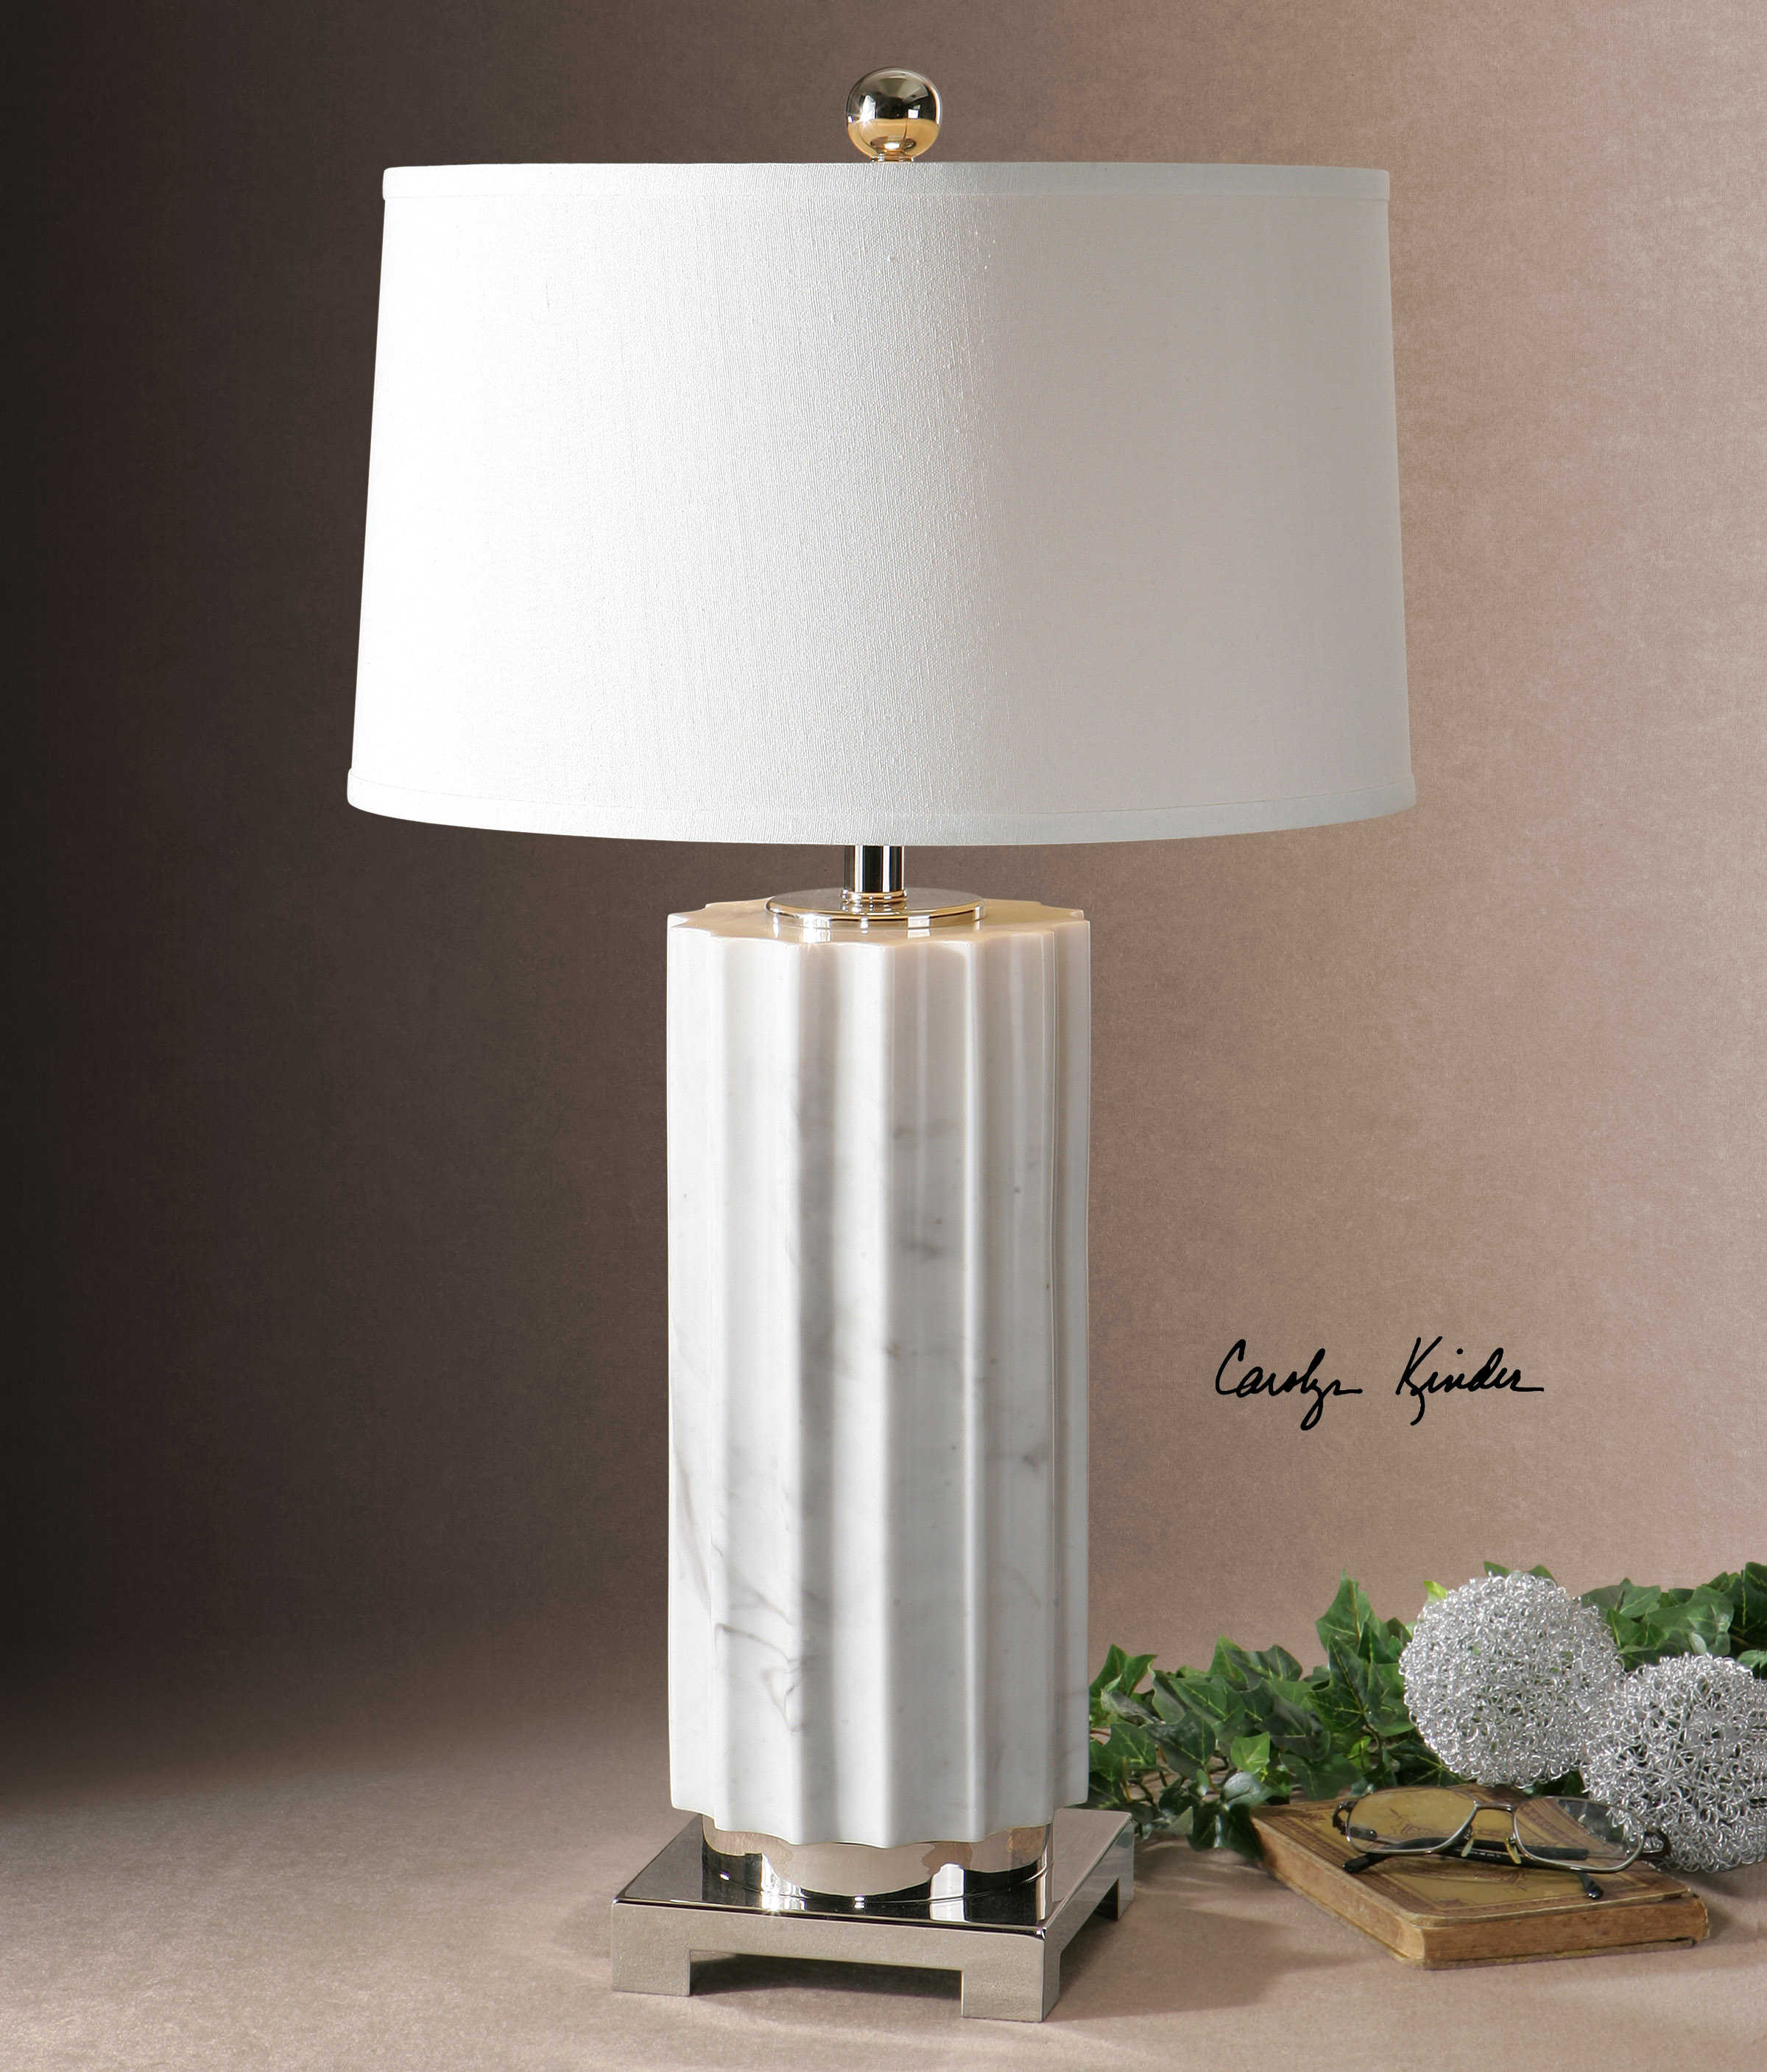 lamp marble image product of marblelamp